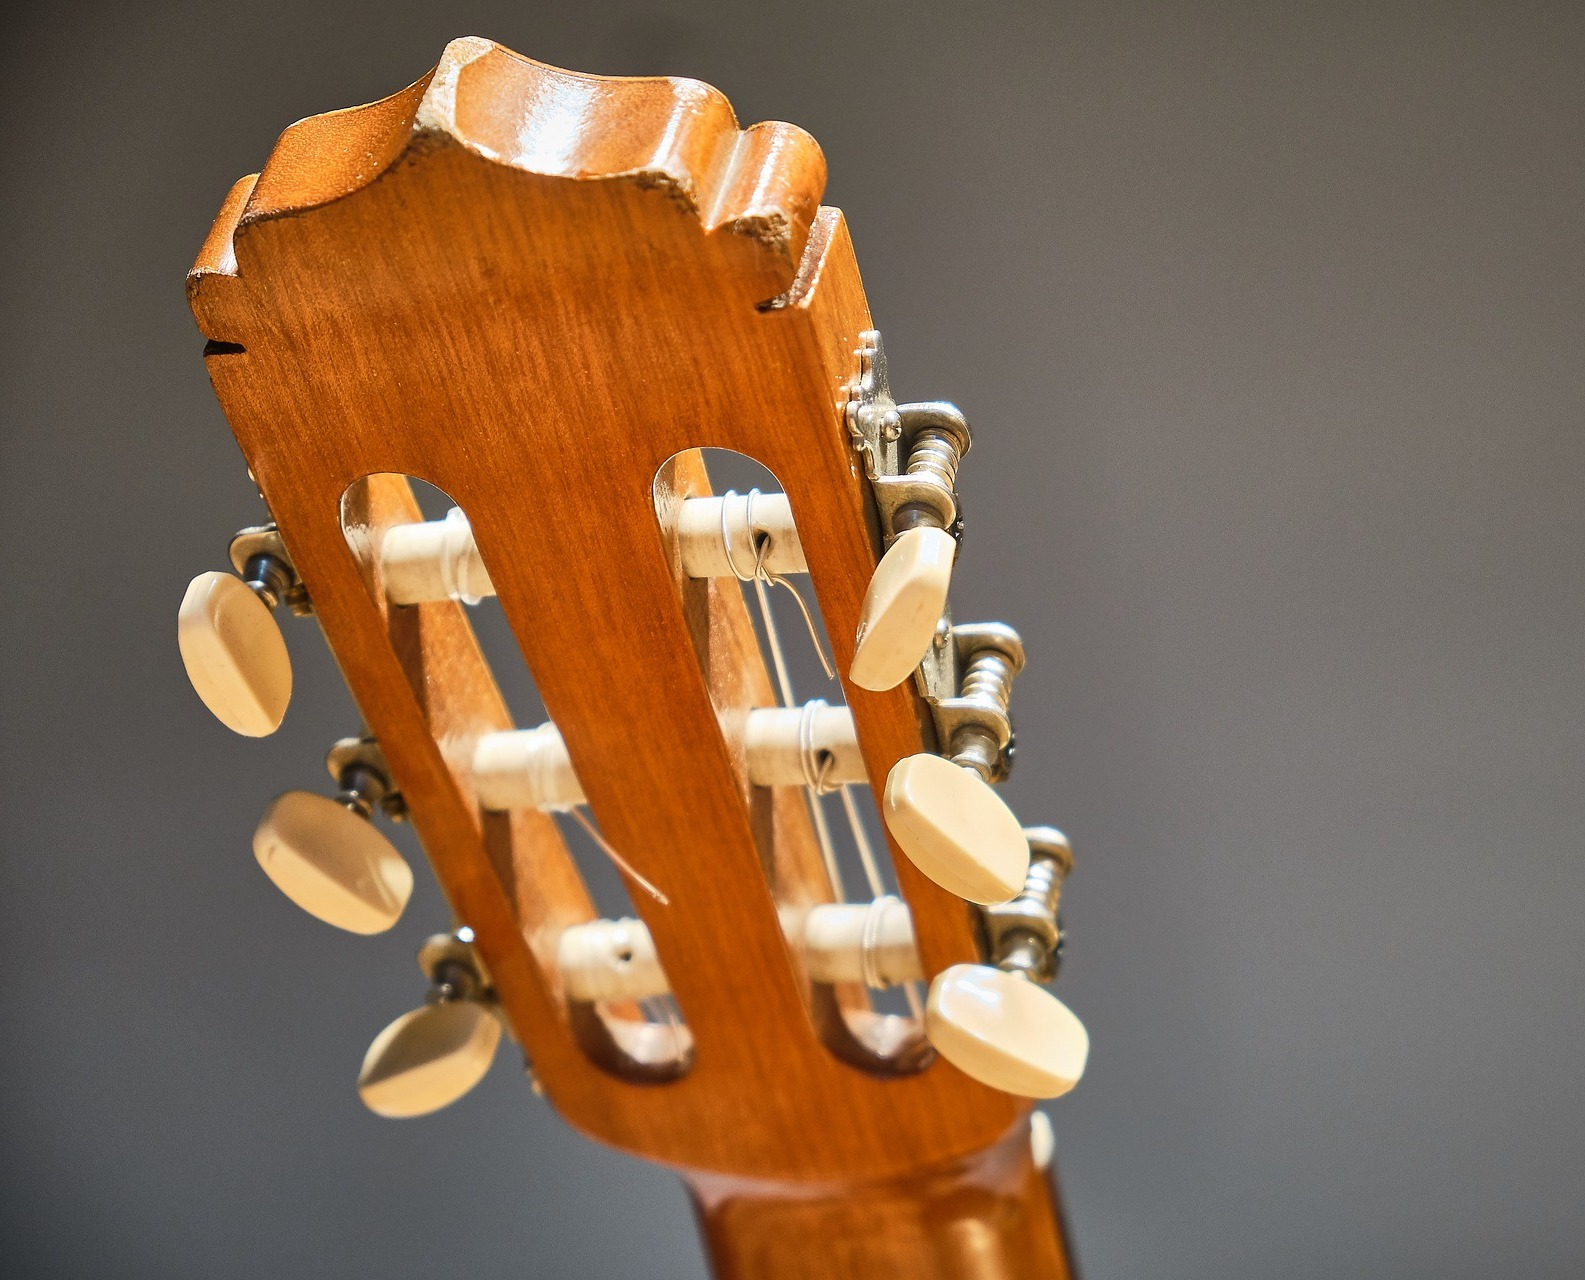 tuning mechanism for a guitar